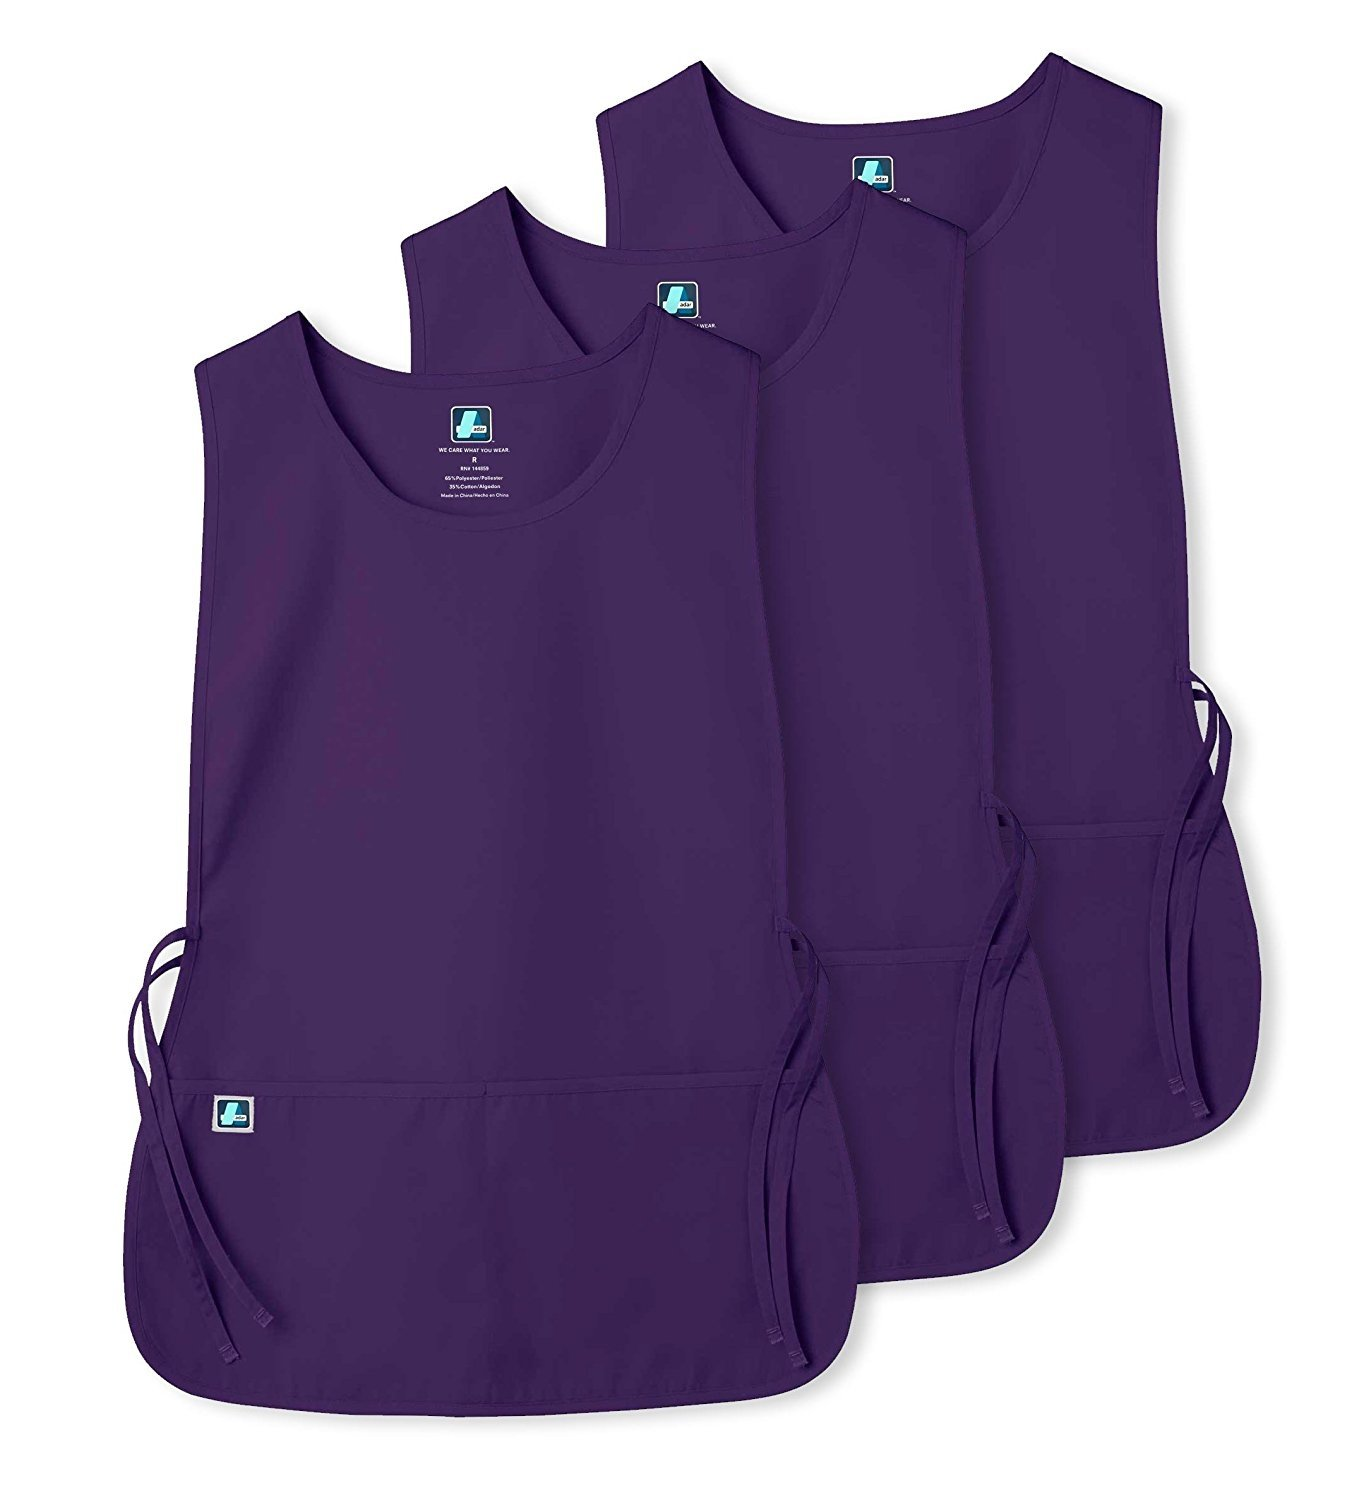 Adar Unisex Cobbler Apron with 2 Pocket / Adjustable Ties - Available in 30 colors (3 Pack)